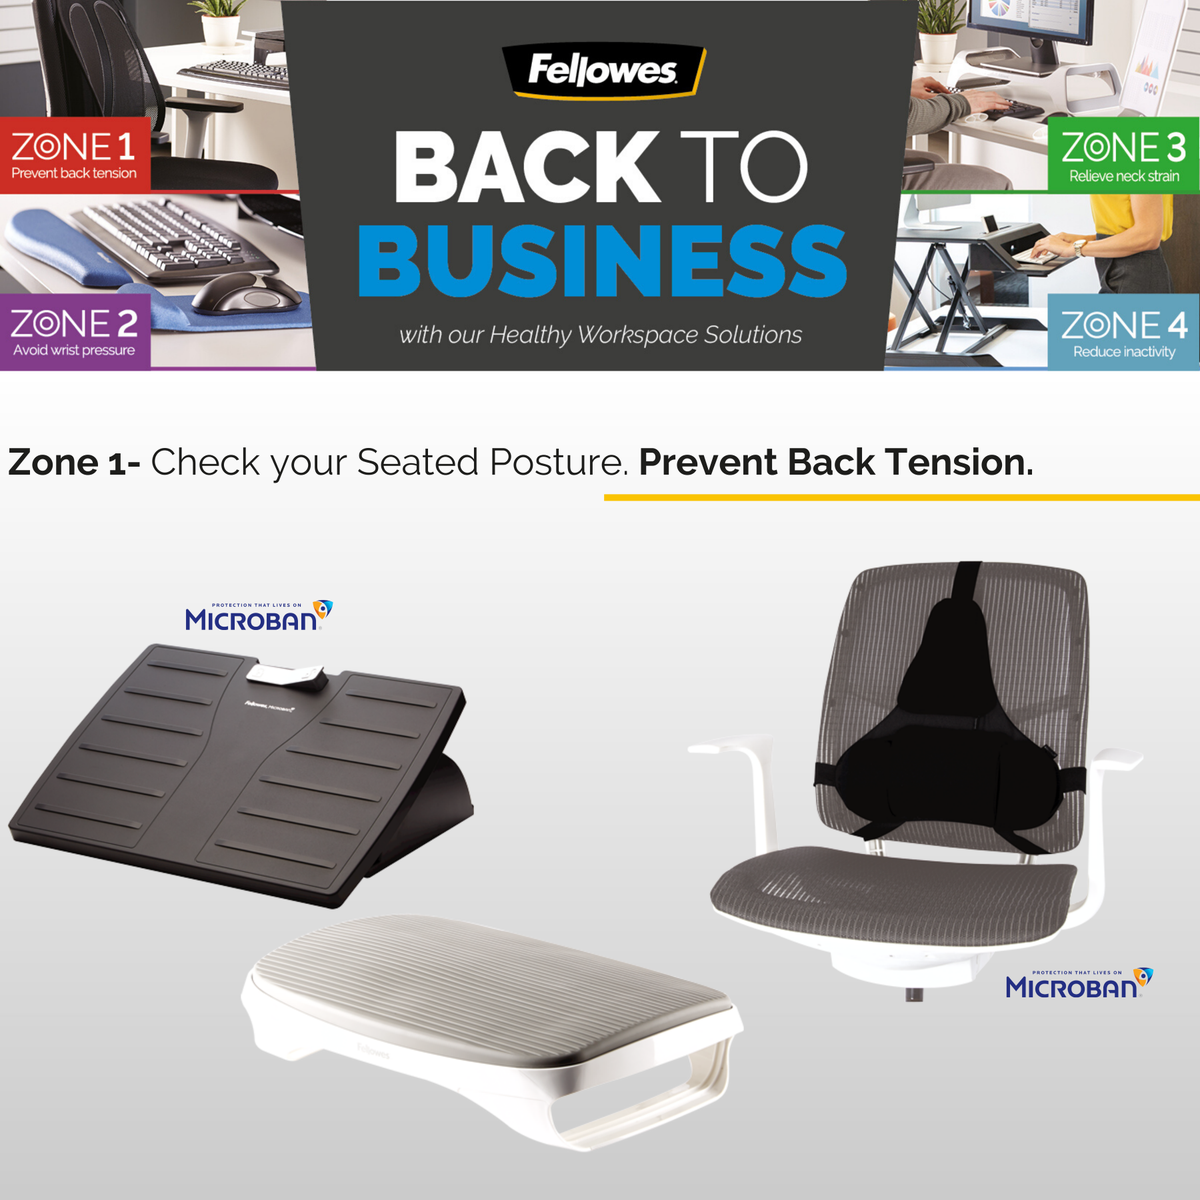 Sitting in a chair without proper support can cause poor circulation and back discomfort.  ➡ Make your workspace comfortable with our ergonomic accessories. Discover the range here: https://t.co/YIKvuuoFOh  #BackToBusiness #YourHealthOurPriority https://t.co/JQf0aZwG6L